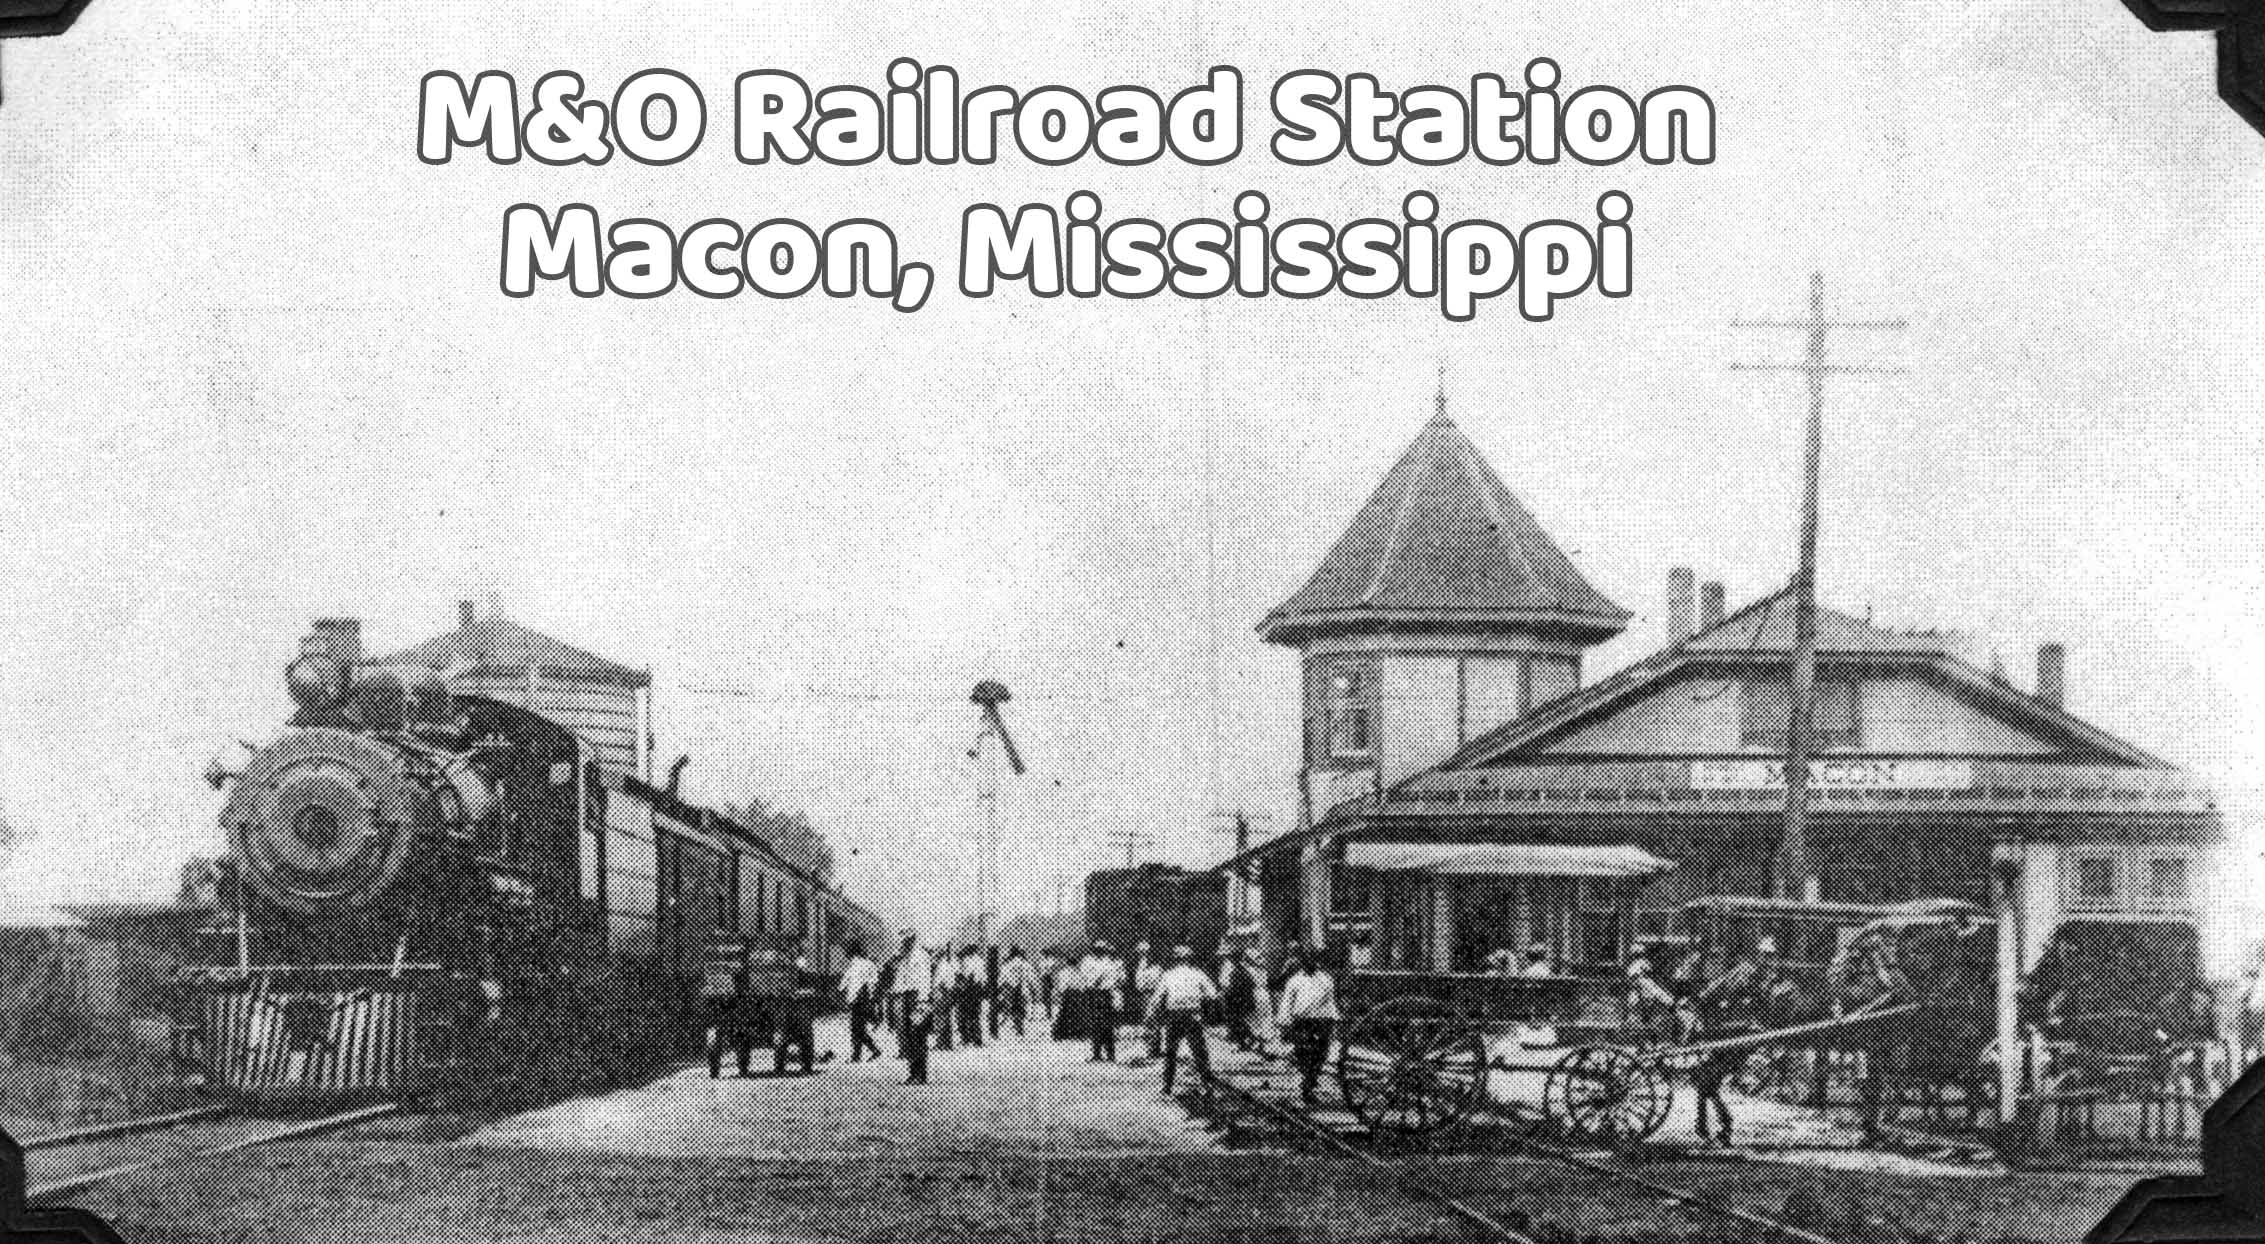 M & O Railroad Station in Macon, Mississippi